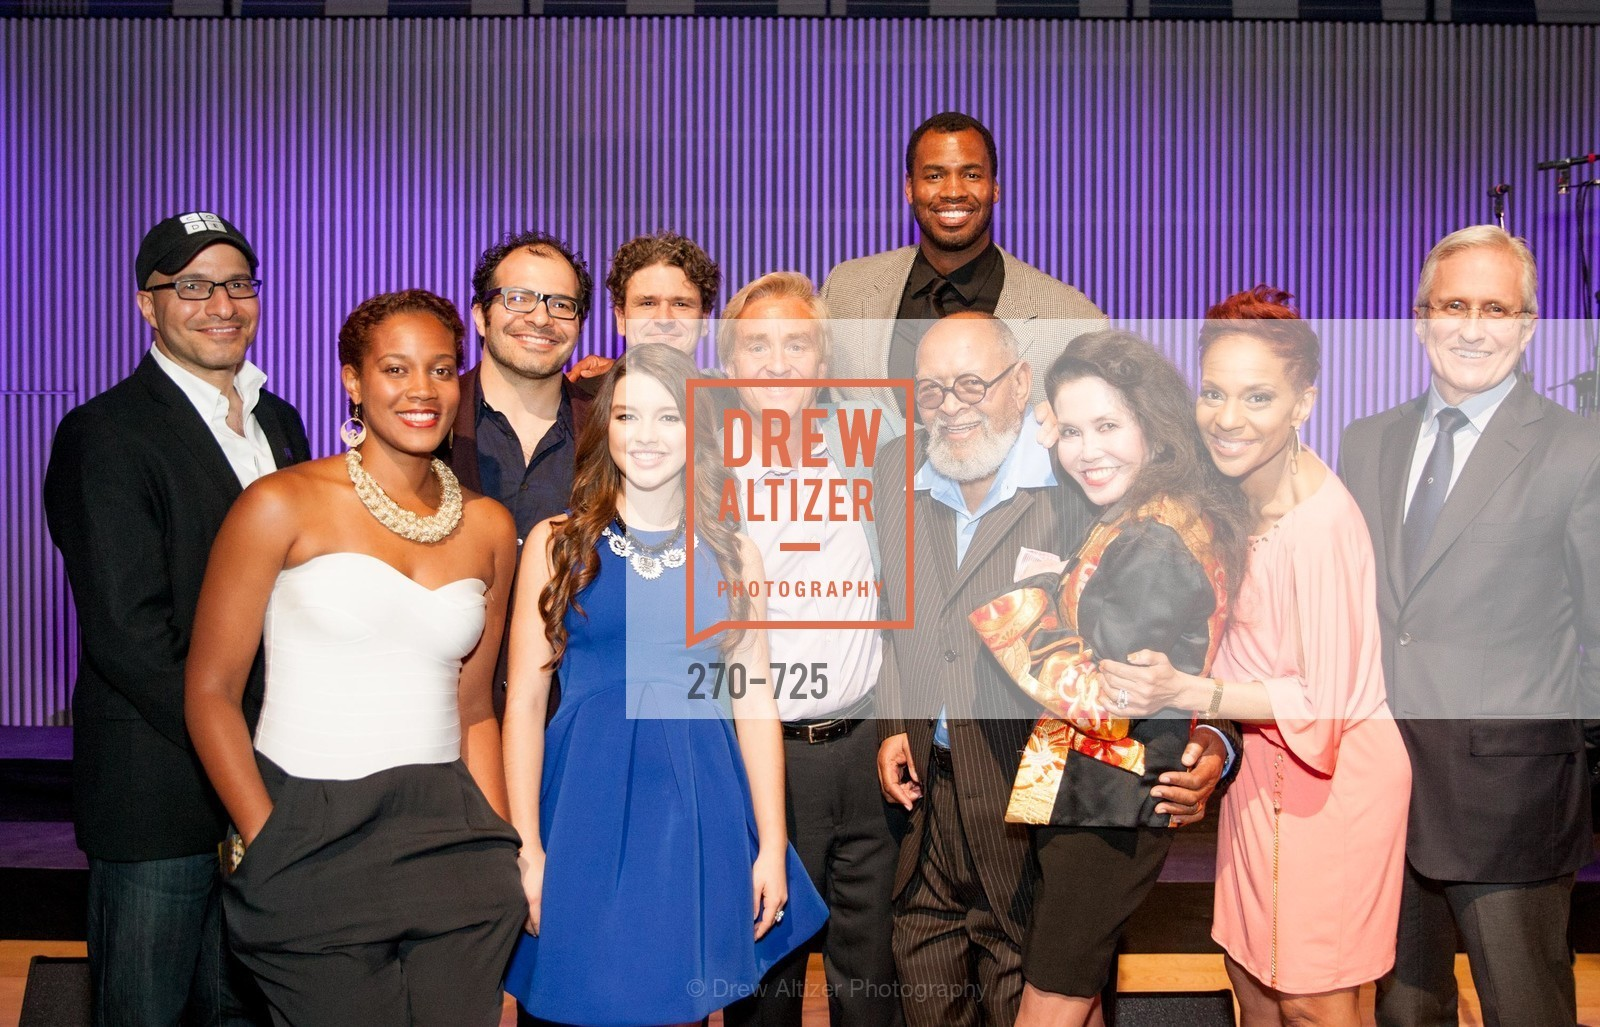 Hadi Partovi, Chinaka Hodge, Ali Partovi, Dave Eggers, Jim Steyer, Jason Collins, Reverend Cecil Williams, Janice Mirikitani, Renel Brooks-Moon, James Coulter, COMMON SENSE Media Awards 2015, US, May 14th, 2015,Drew Altizer, Drew Altizer Photography, full-service event agency, private events, San Francisco photographer, photographer California